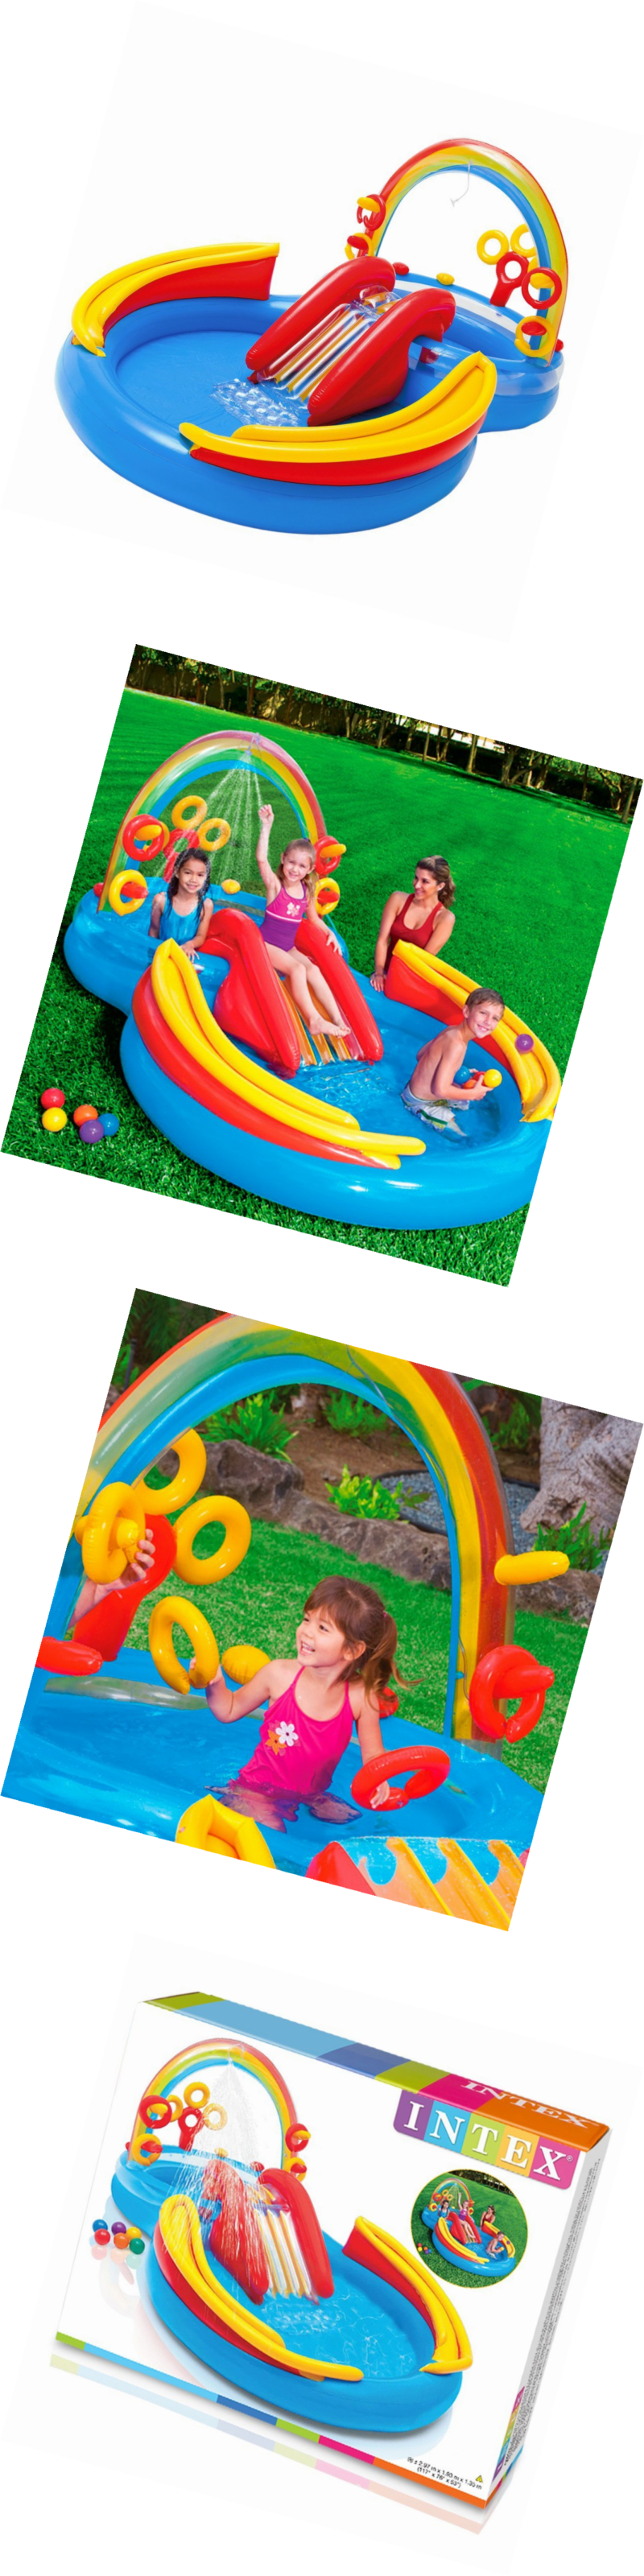 Pools Intex Rainbow Ring Inflatable Play Center 117 X 76